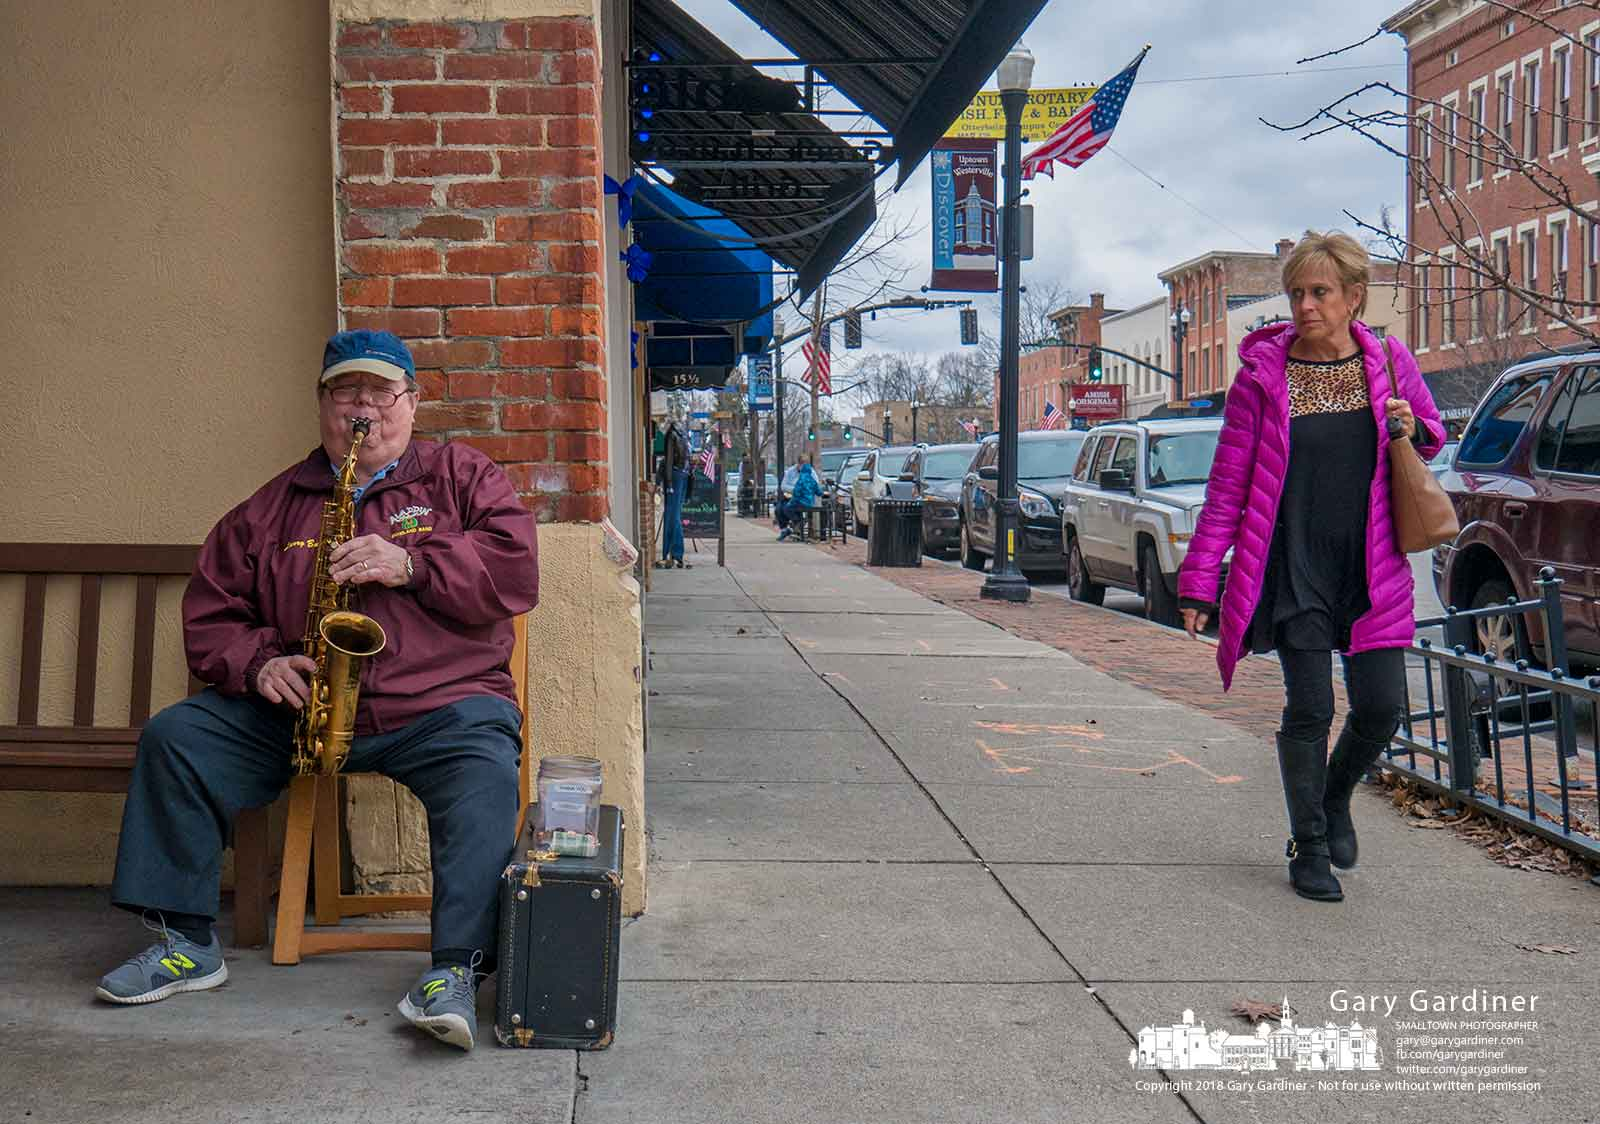 A saxophone busker performs to a single listener turning as she passes him in front of Graeters in Uptown Westerville on a warm winter day. My Final Photo for Feb. 28, 2018.